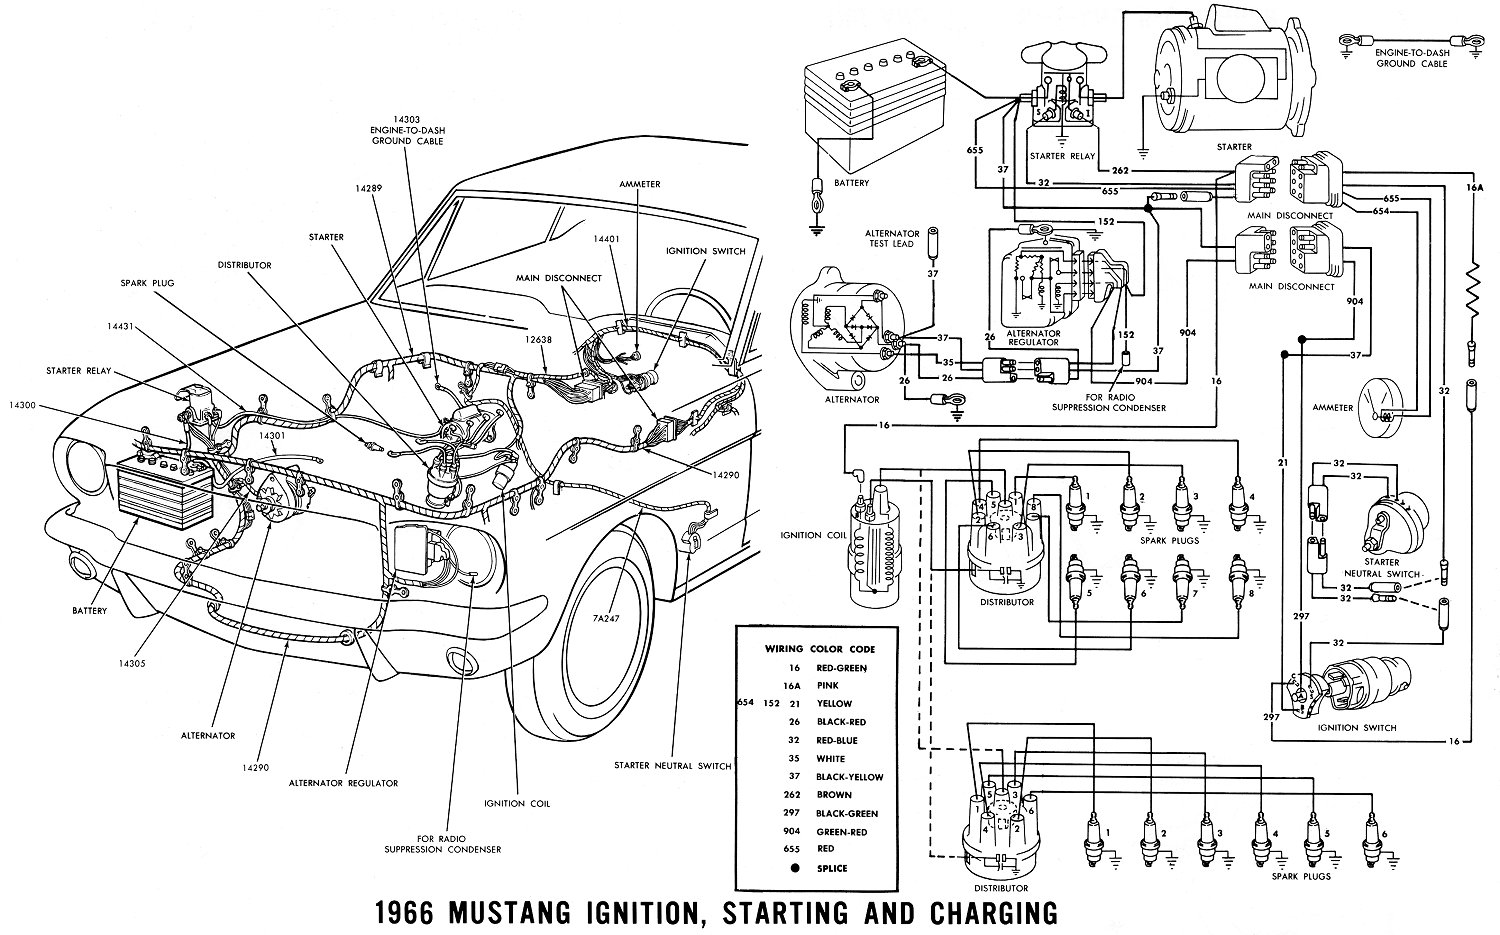 1978 Fiat 124 Spider Wiring Diagram additionally 3800202 1980 Headlight Vacuum Question also Discussion C4366 ds497802 further Mgb Engine Diagram additionally Another Led Taillight Question. on mgb headlight wiring